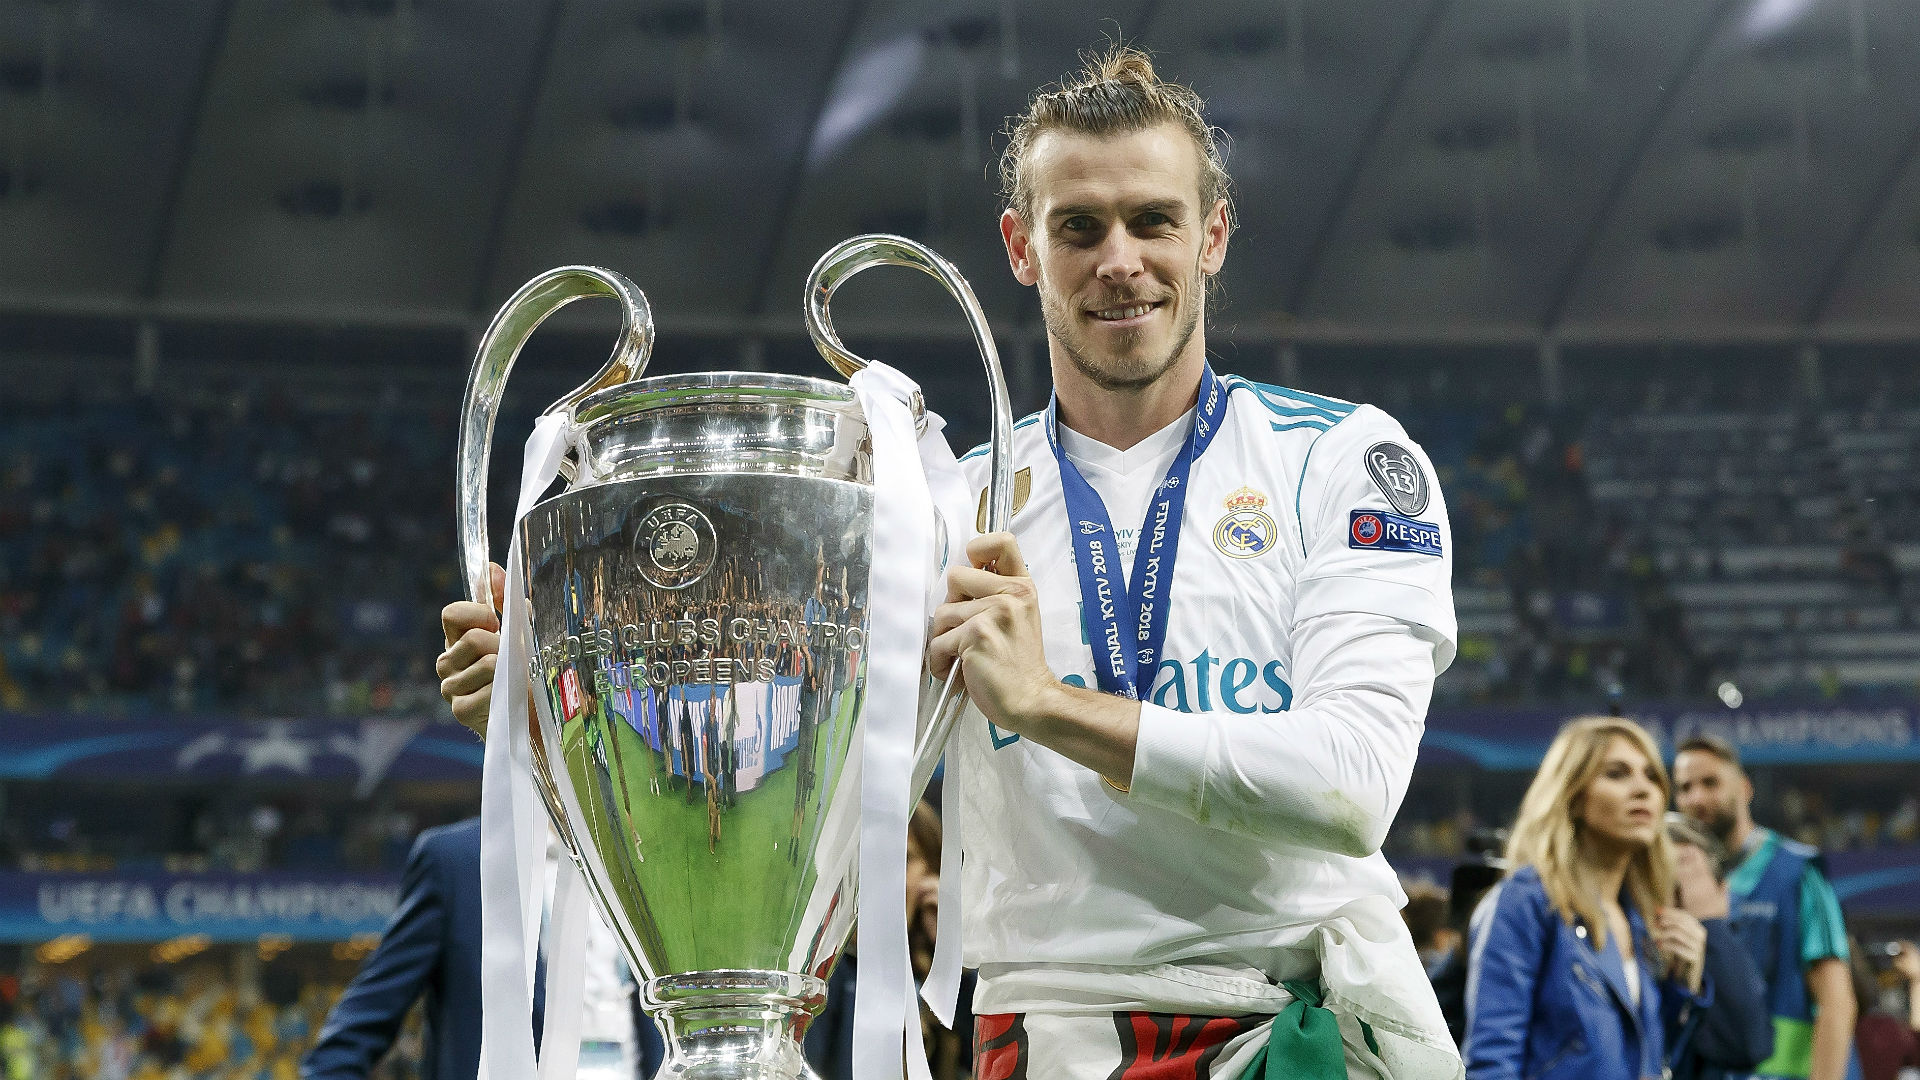 Bale wants to bring Madrid's winning mentality to Tottenham's quest for silverware